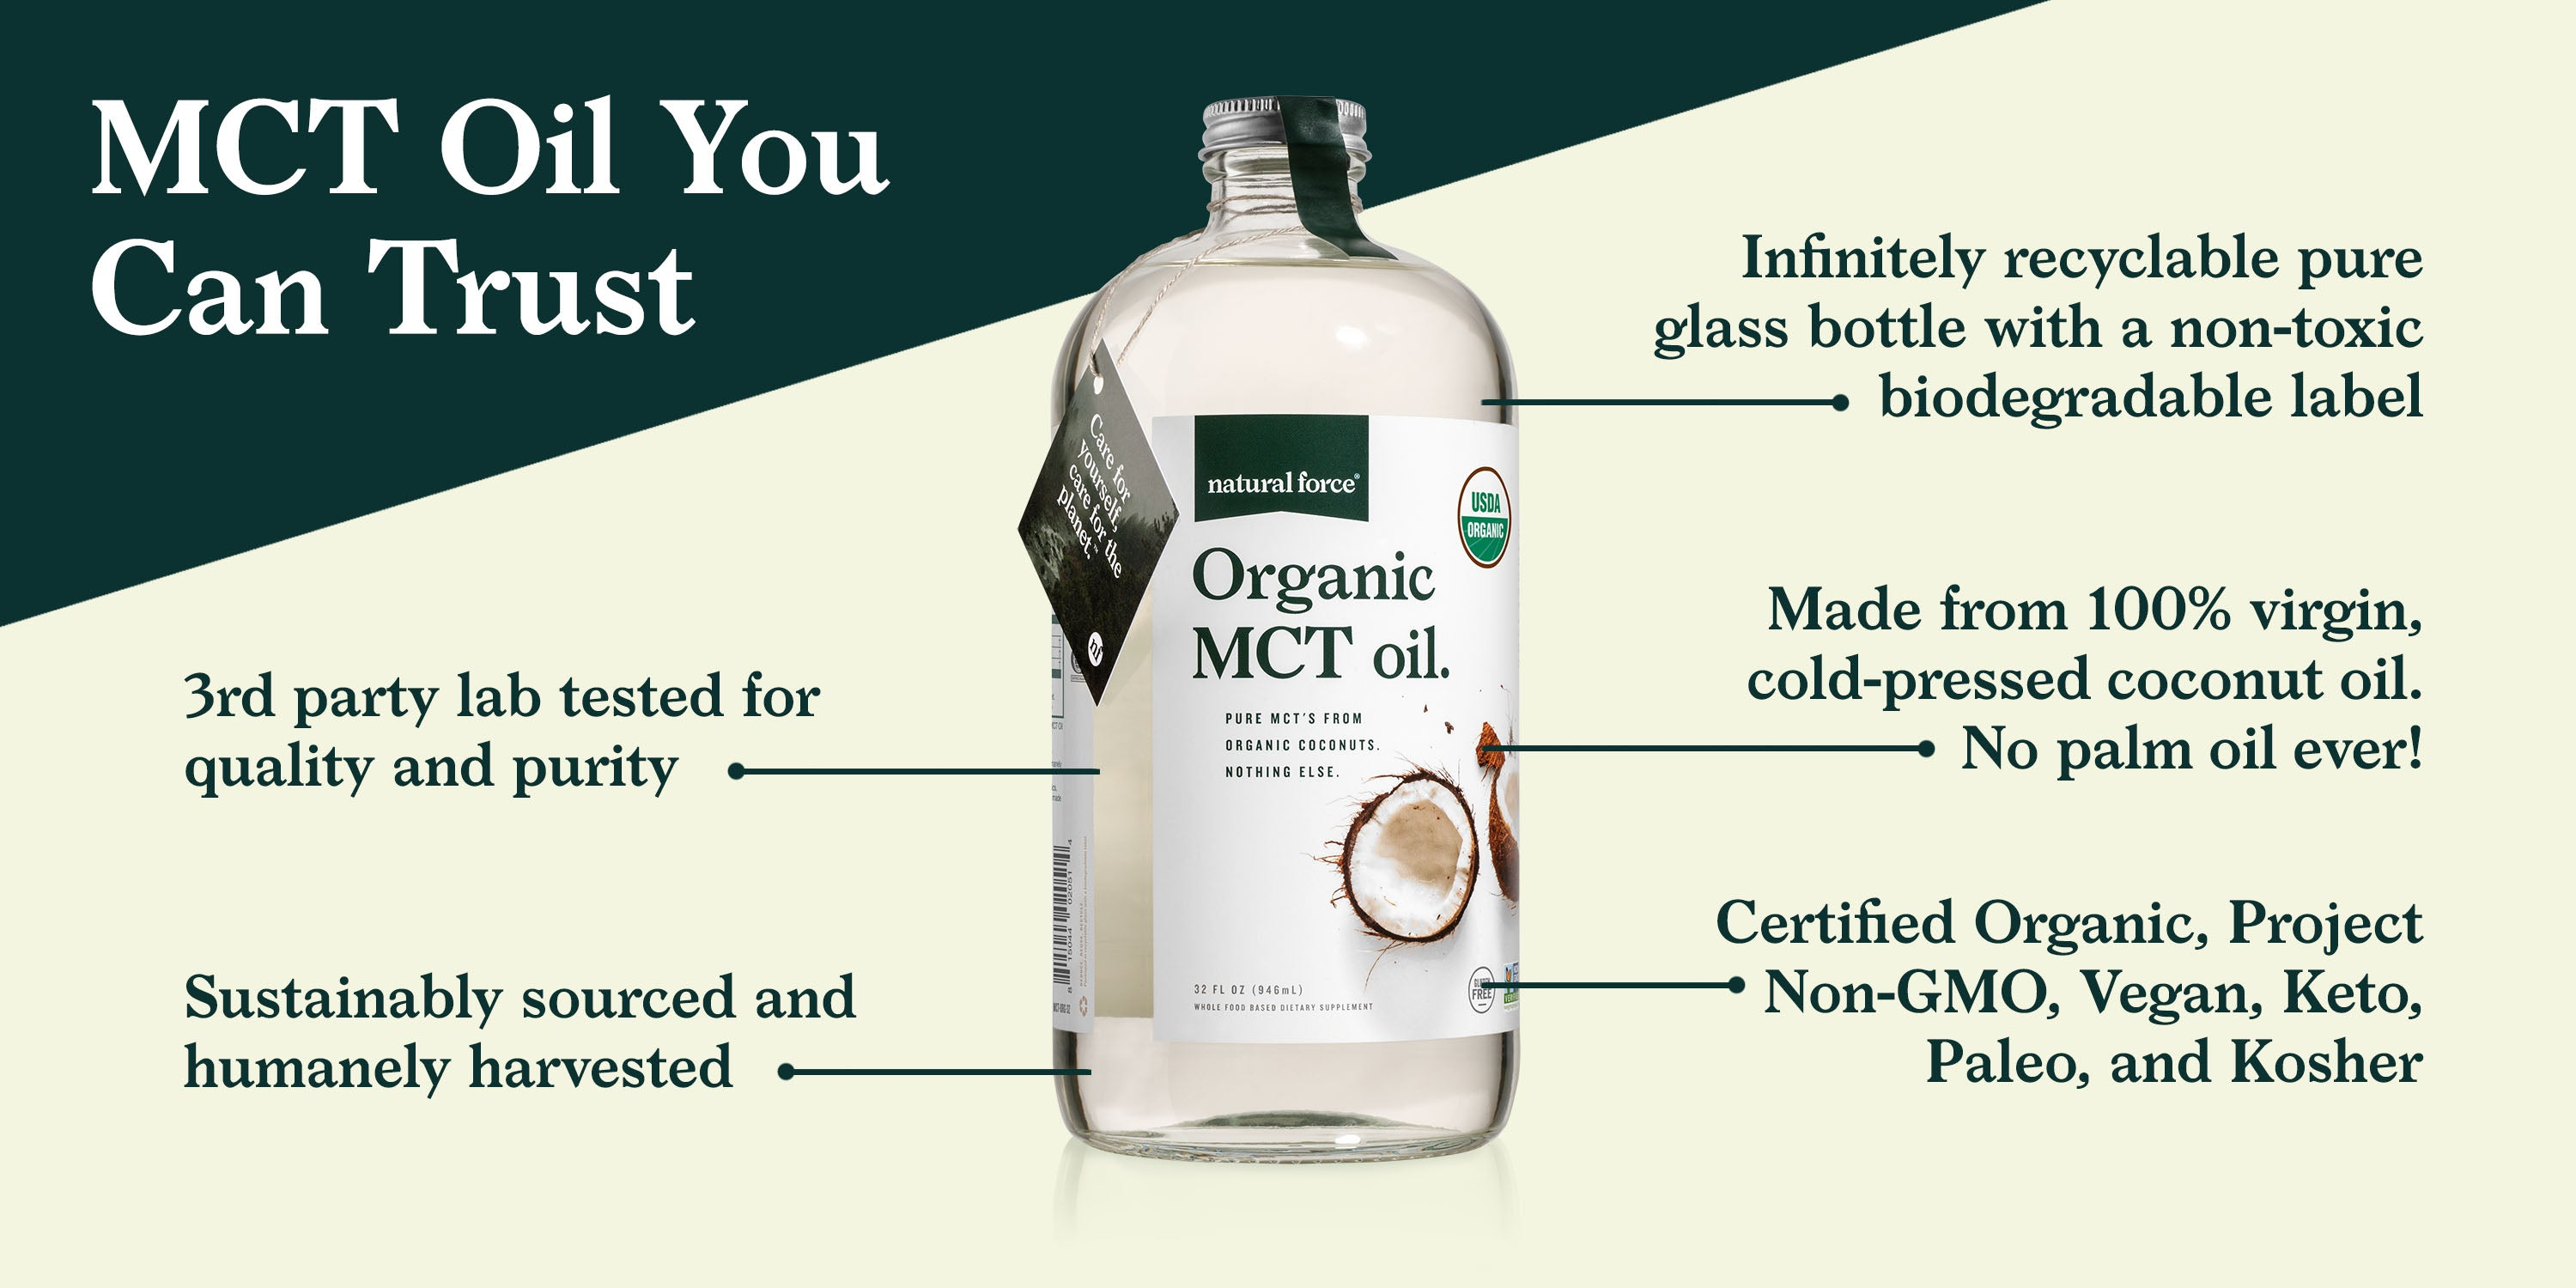 natural force organic mct oil features and benefits